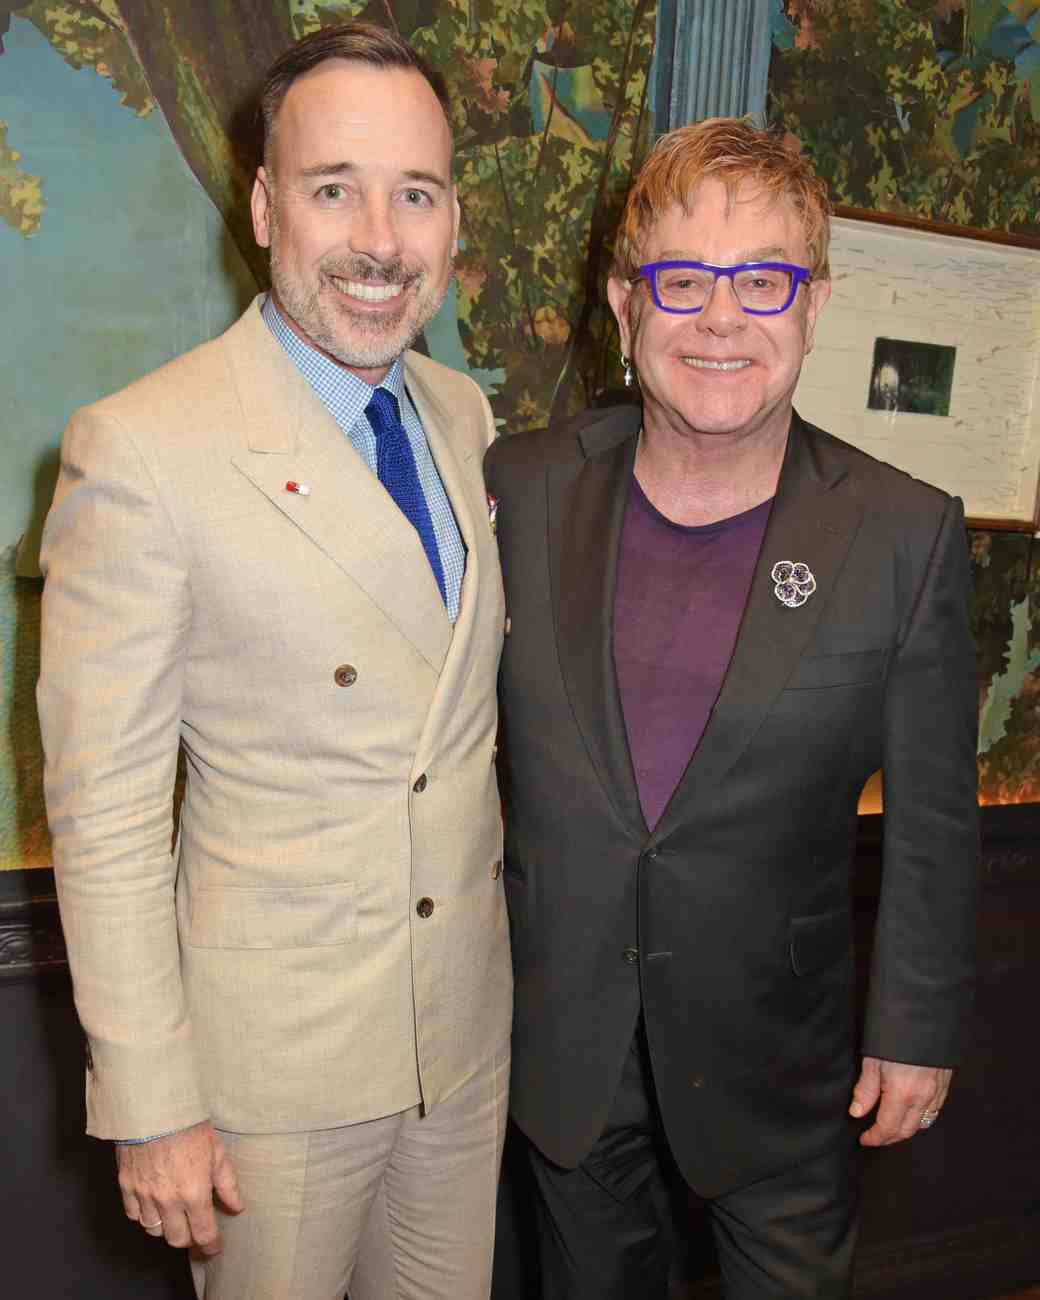 elton-john-david-furnish-iconic-hollywood-couples-0216.jpg